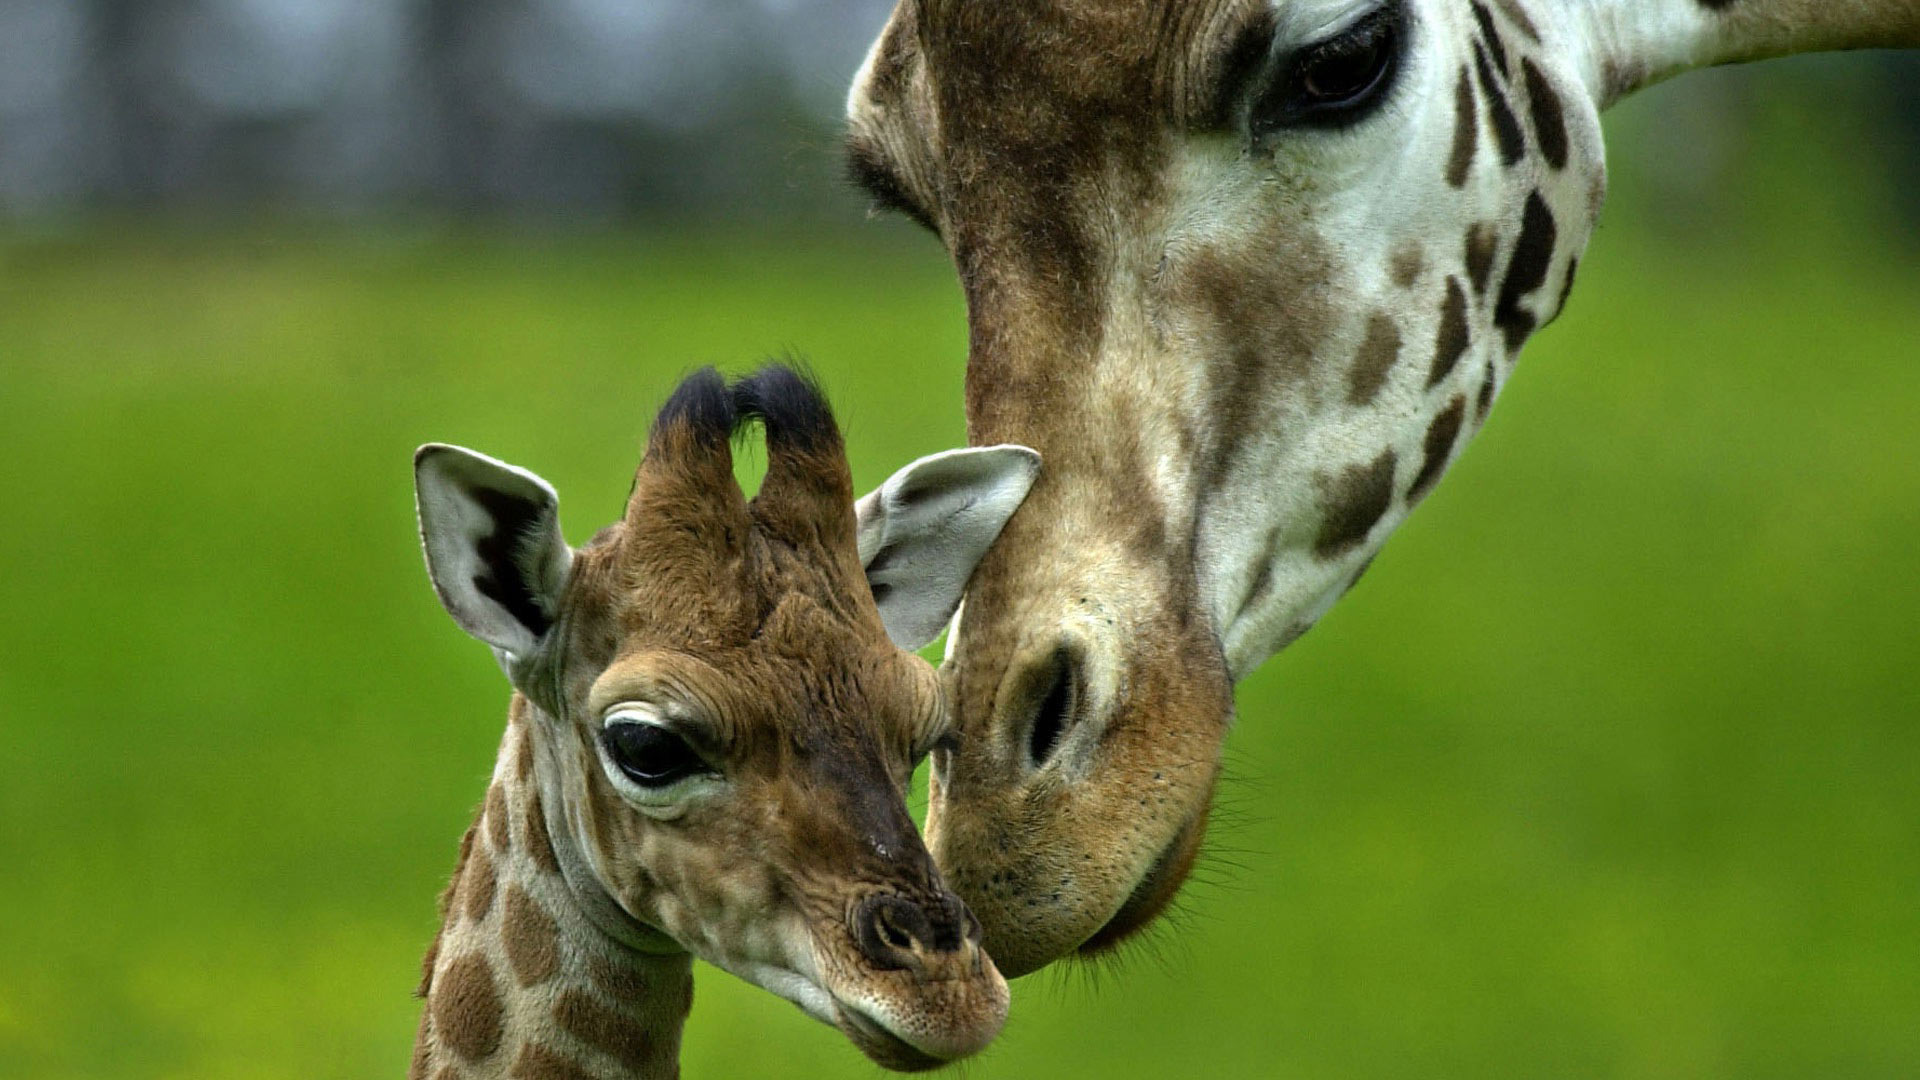 Baby Giraffe Pictures